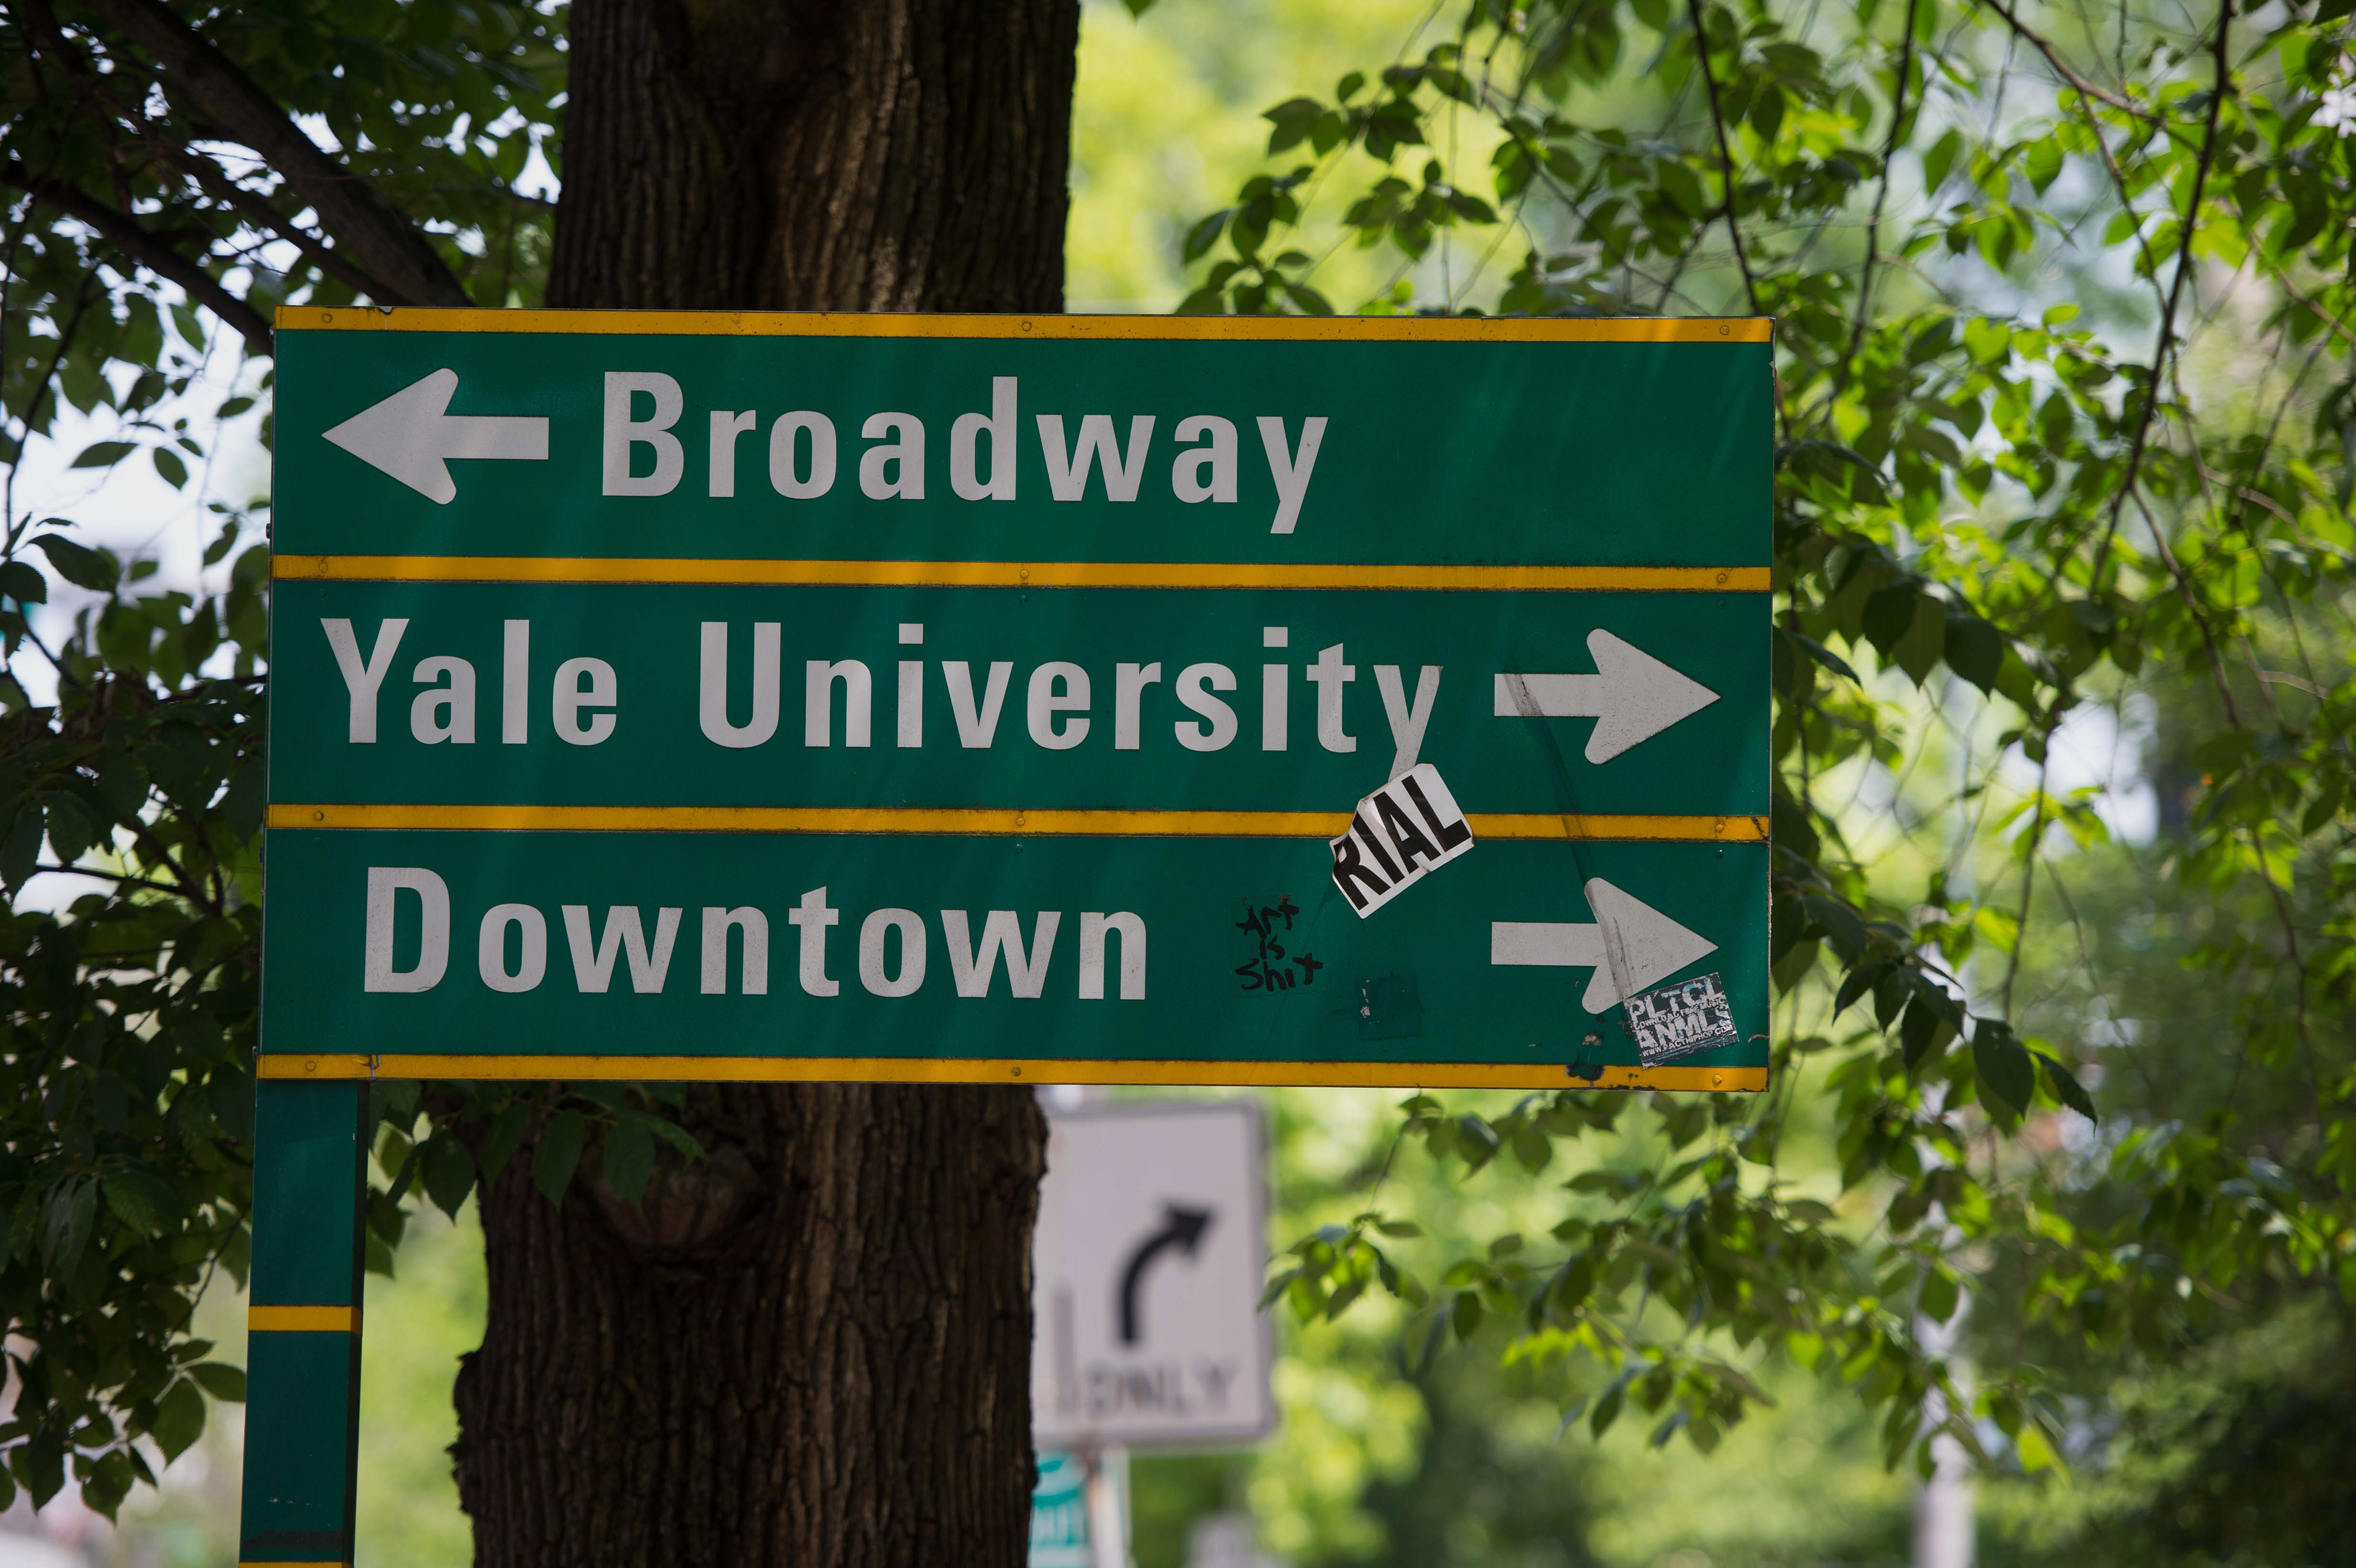 A street sign on the campus of Yale University in New Haven, CT, U.S., on Friday, June 12, 2015. Photographer: Craig Warga/Bloomberg *** Local Caption ***